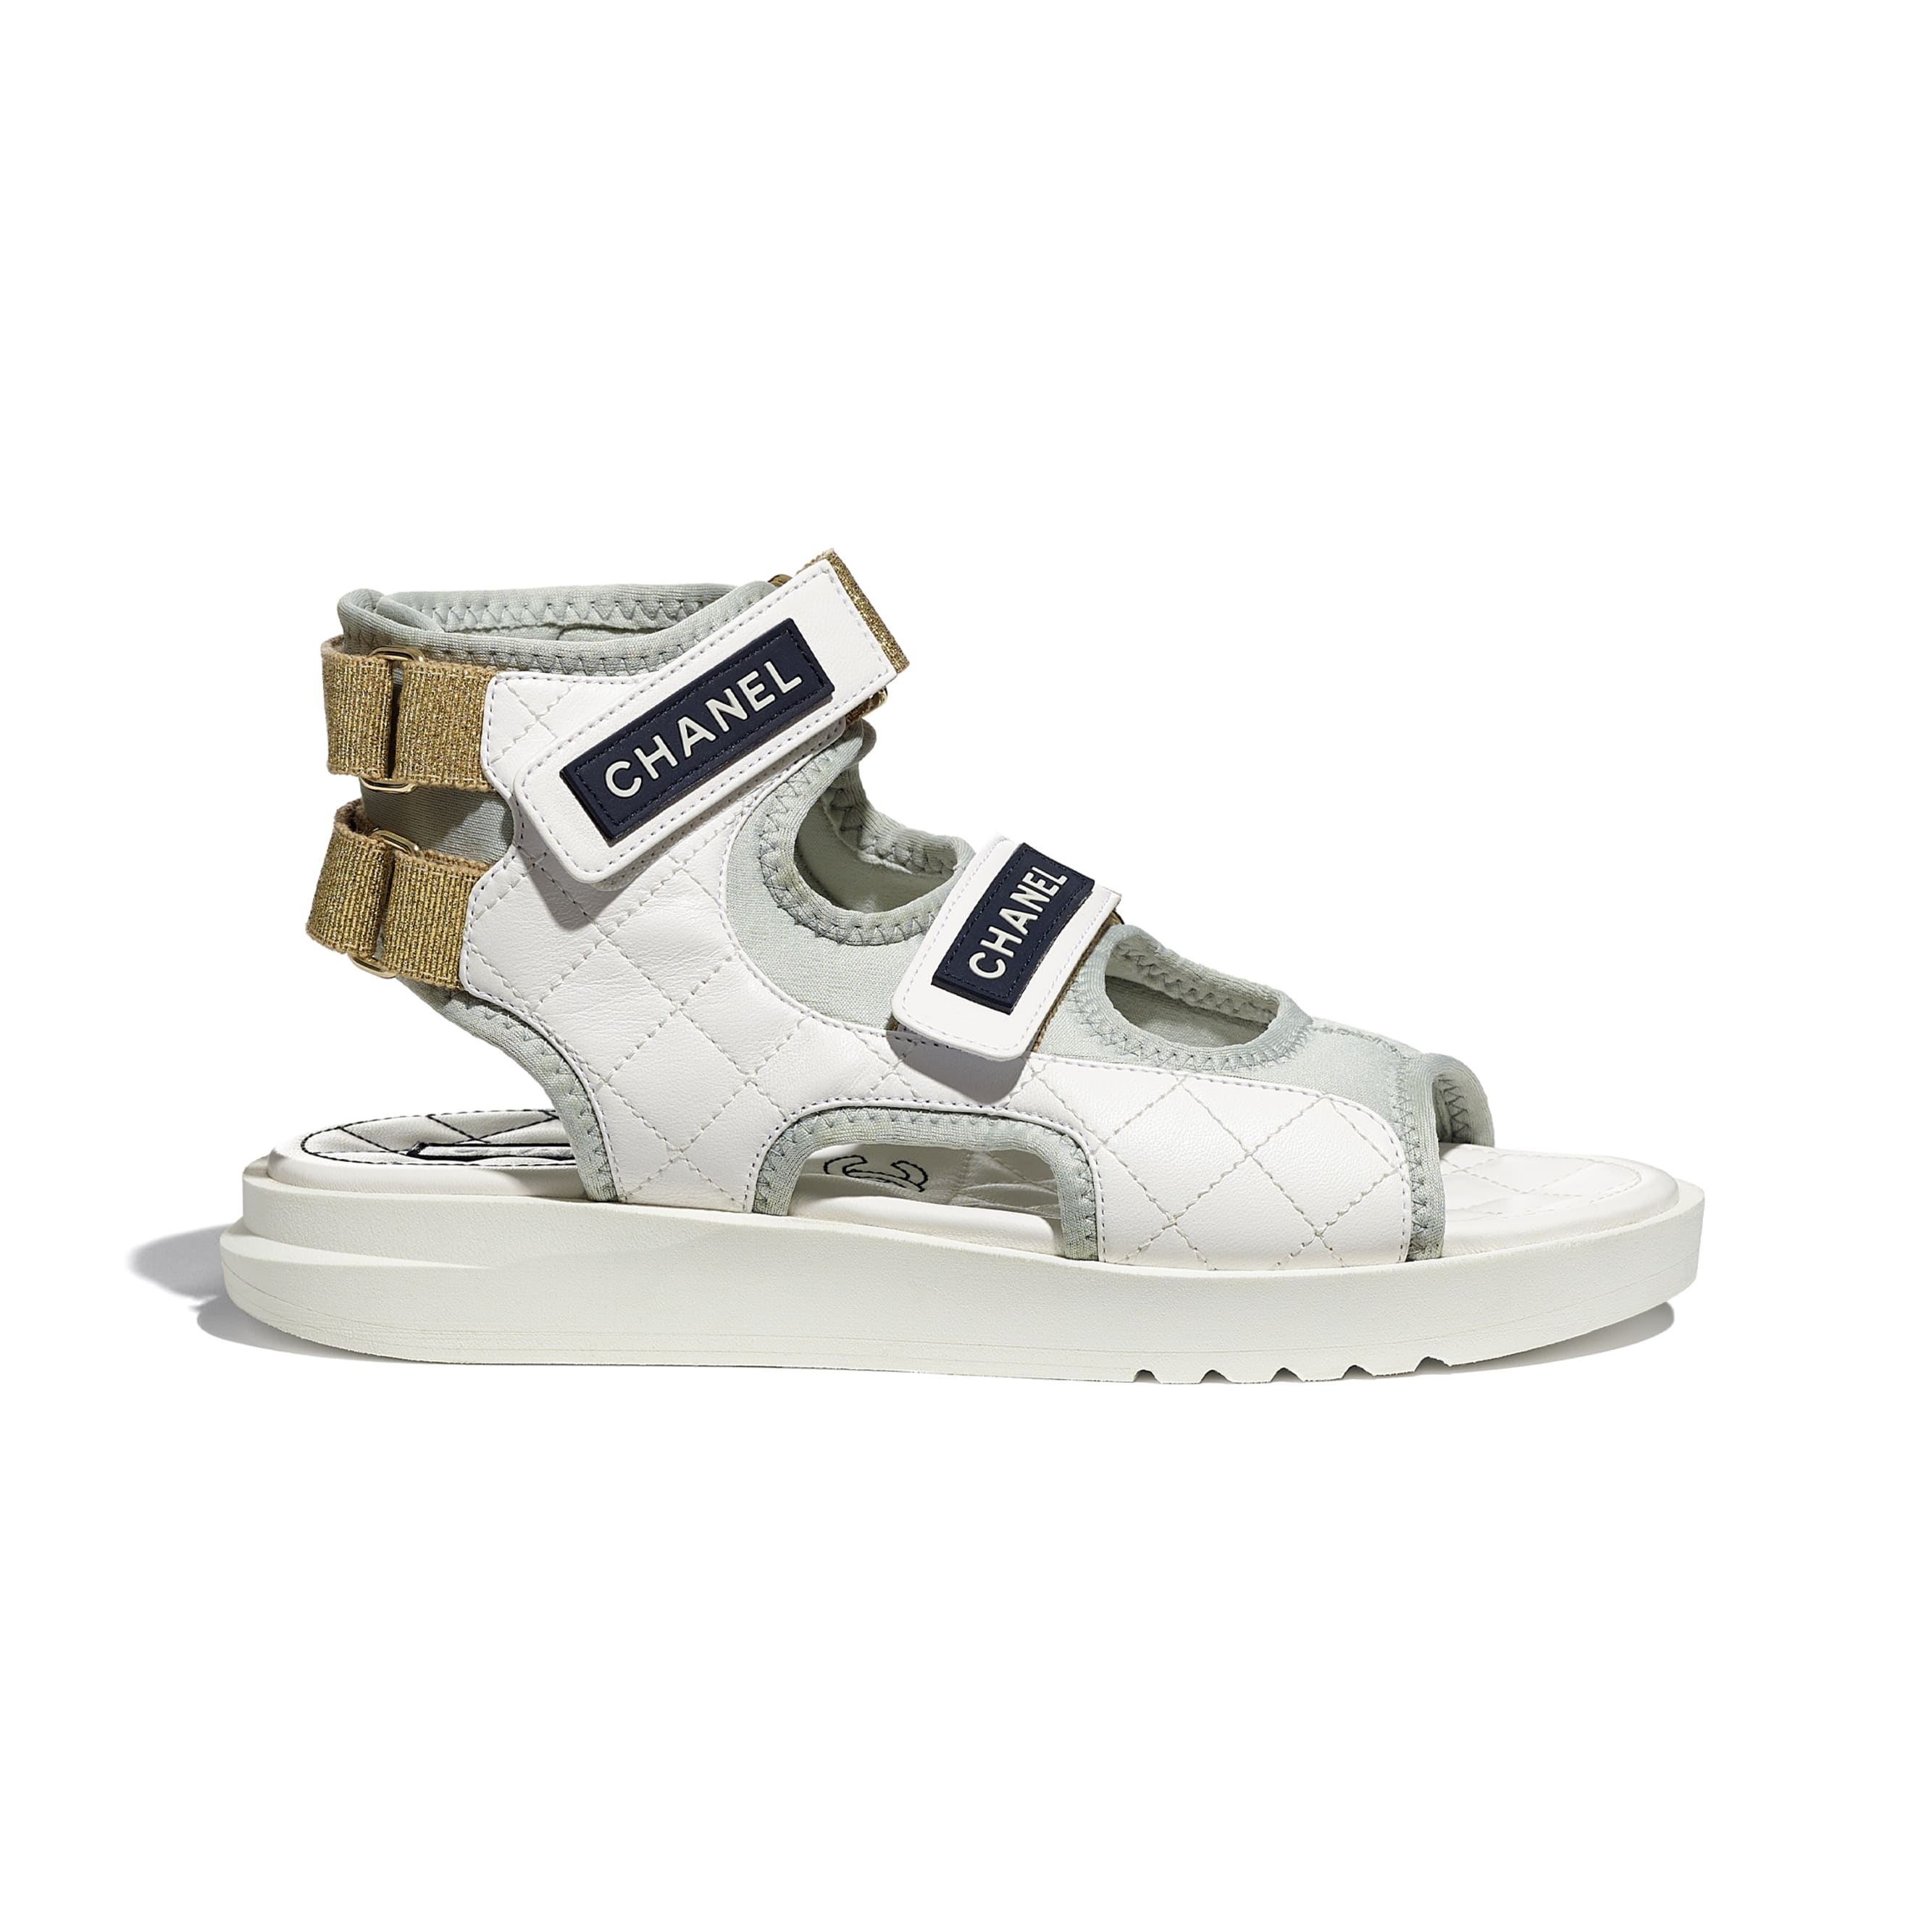 Sandals - White, Light Grey & Navy Blue - Goatskin, Fabric & TPU - CHANEL - Default view - see standard sized version